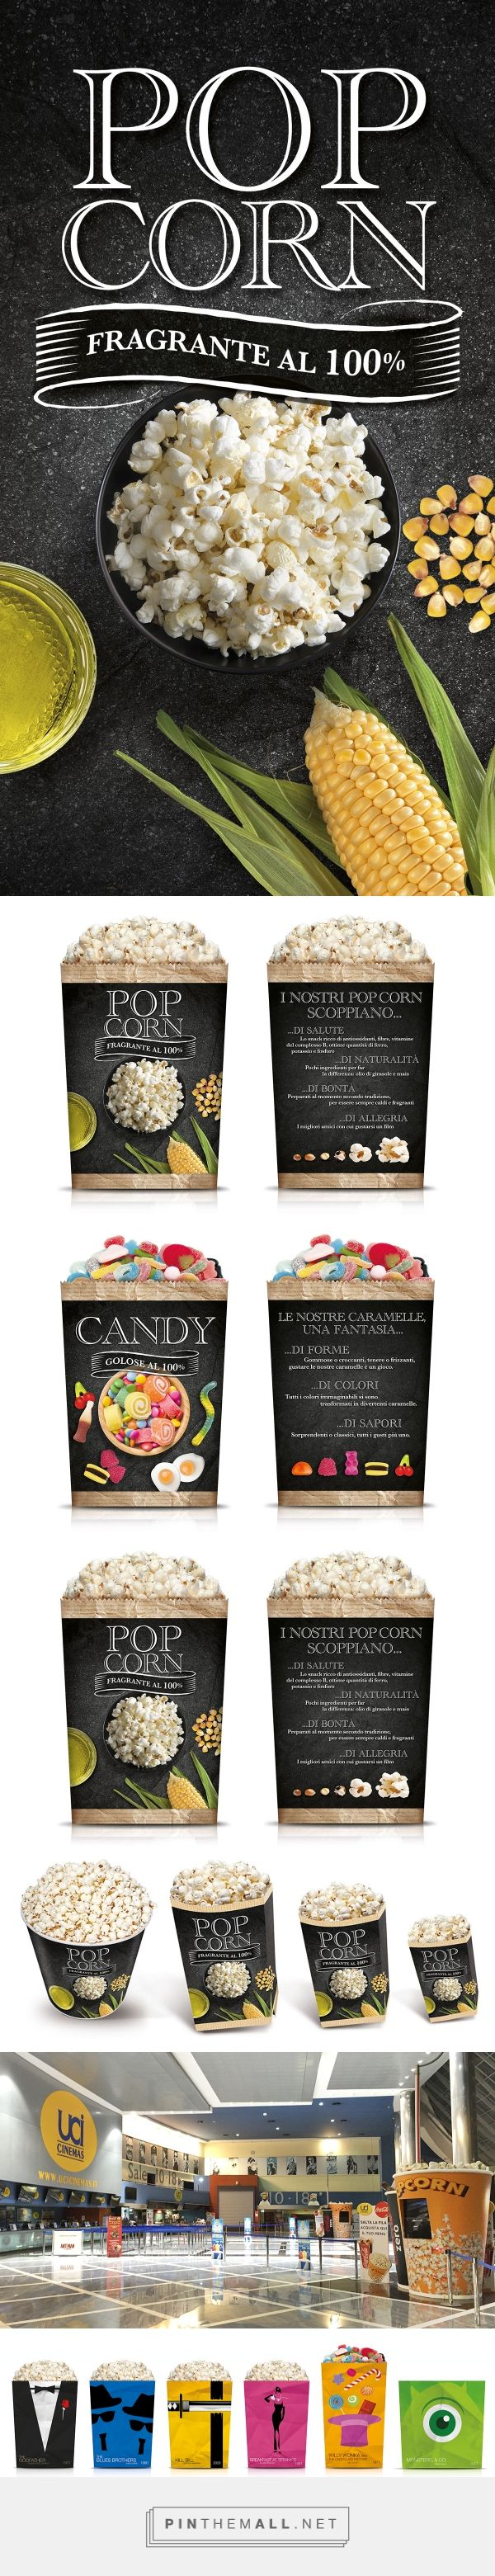 The new packaging popcorn and candy Uci Cinemas on Behance by Mattia Generali curated by Packaging Diva PD. Yummy, who wants some popcorn now: )